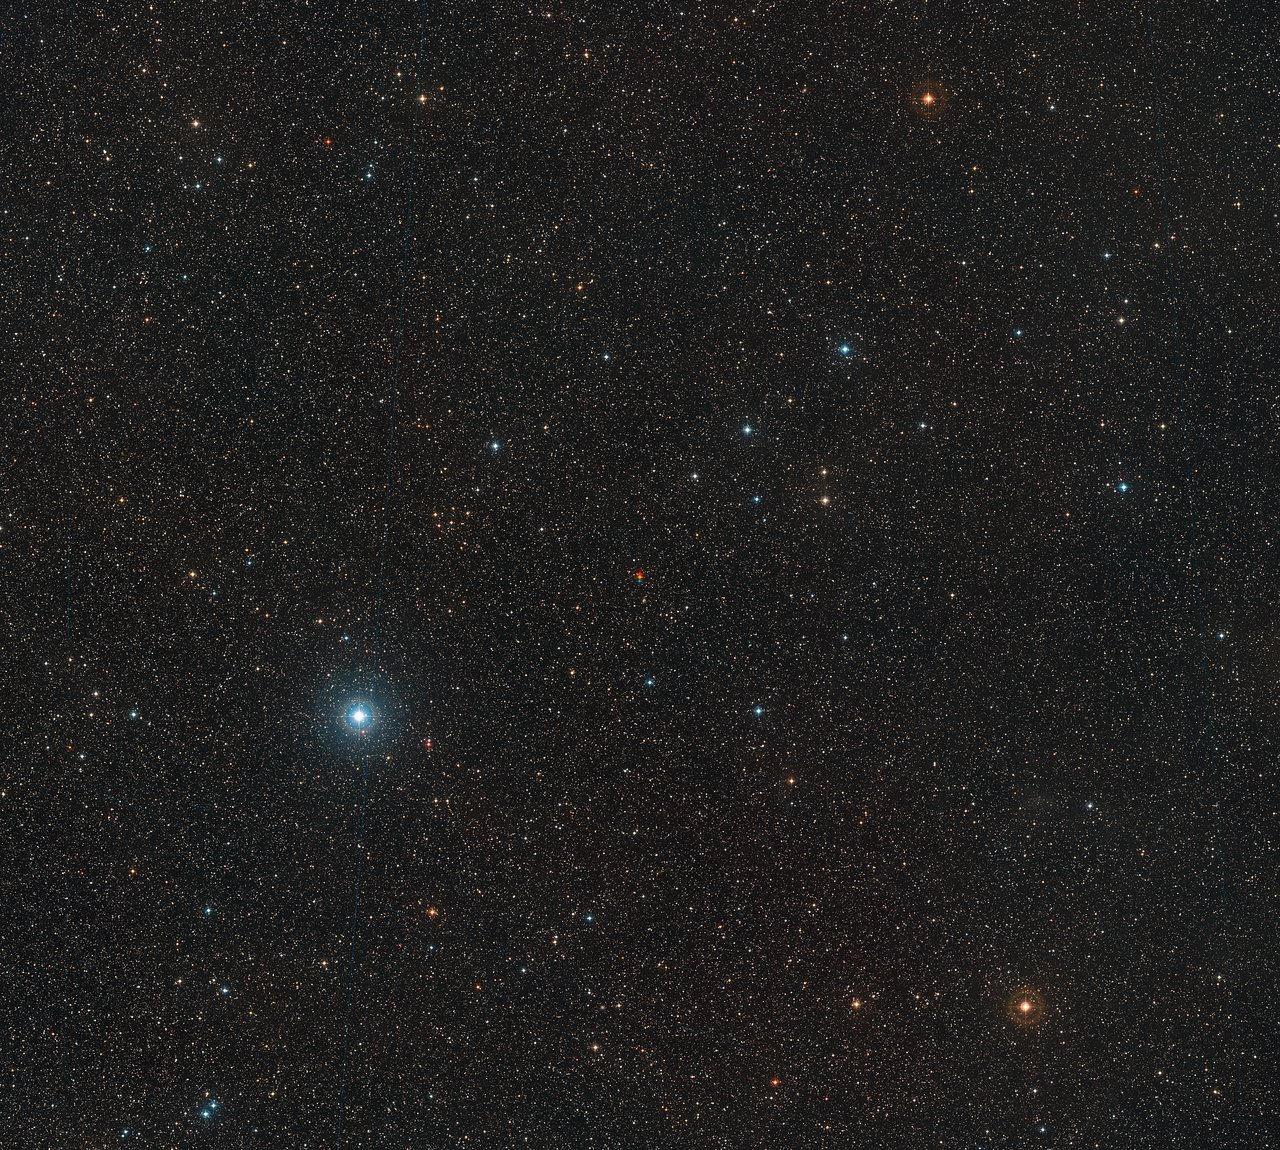 This image shows the surroundings of Barnard's Star. This star was discovered to host a frozen super-Earth exoplanet. (Credit: ESO/Digitized Sky Survey 2 Acknowledgement: Davide De Martin E — Red Dots)